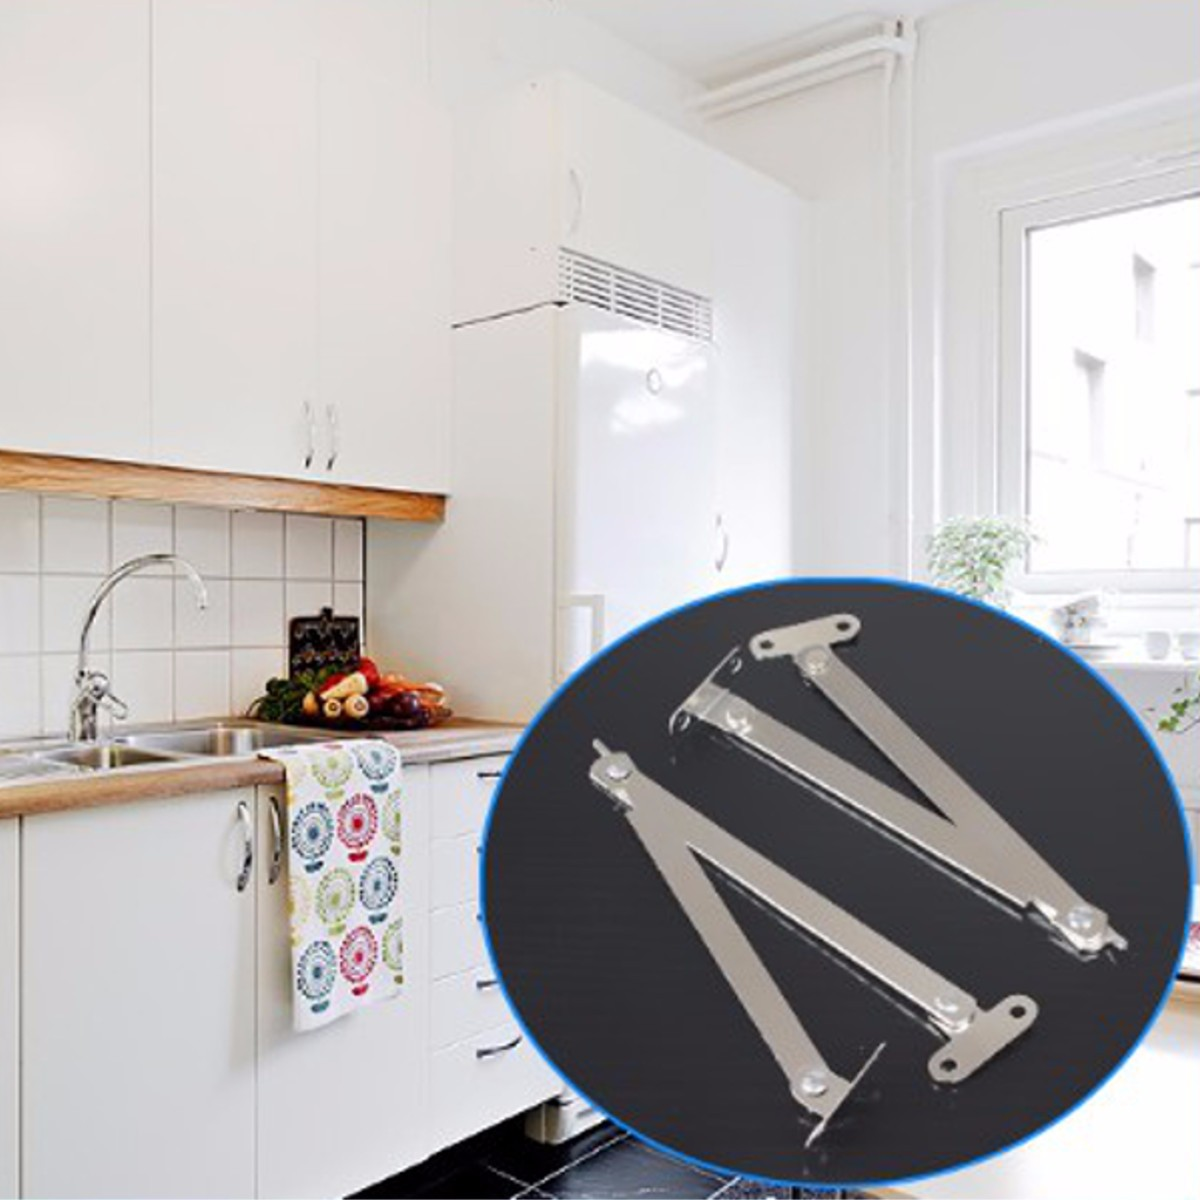 HTB1r0.EaAH0gK0jSZPiq6yvapXaJ - 2Pcs Stainless Steel Cabinet Cupboard Furniture Doors Close Lift Up Stay Support Hinge Kitchen Furniture Hardware